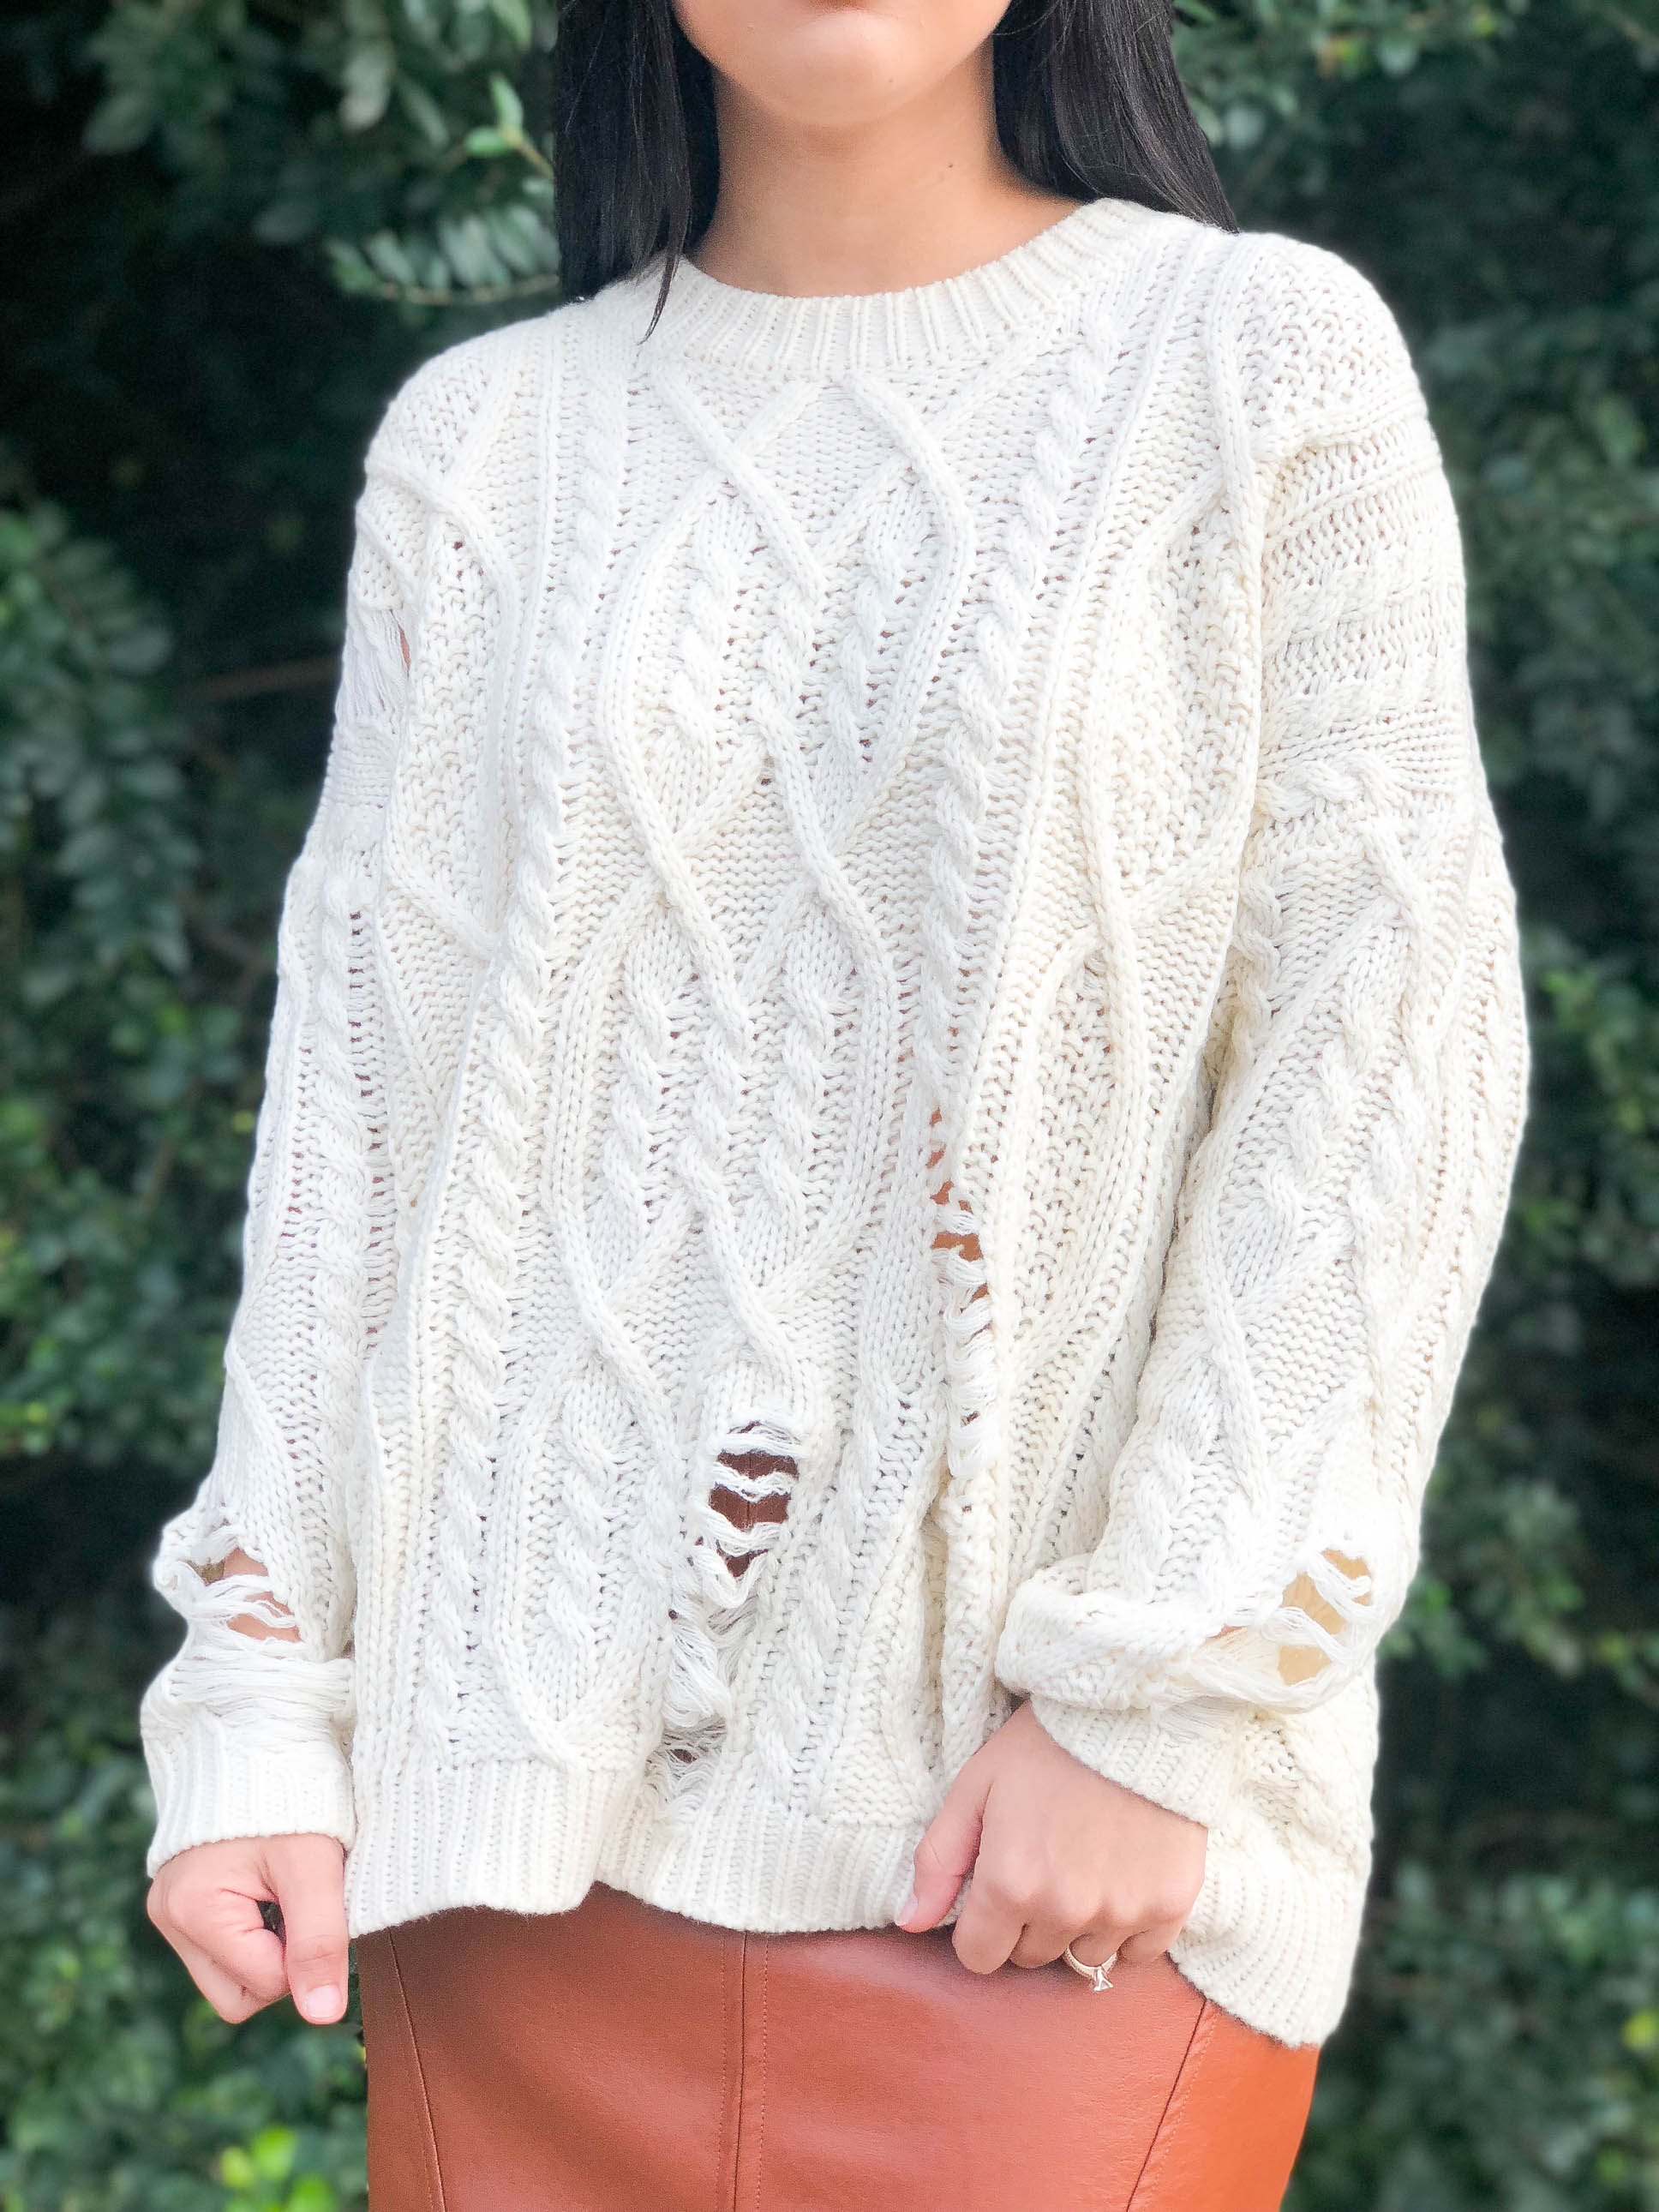 Marshmellow World Ripped Knit Sweater - The Flawless Babe Boutique